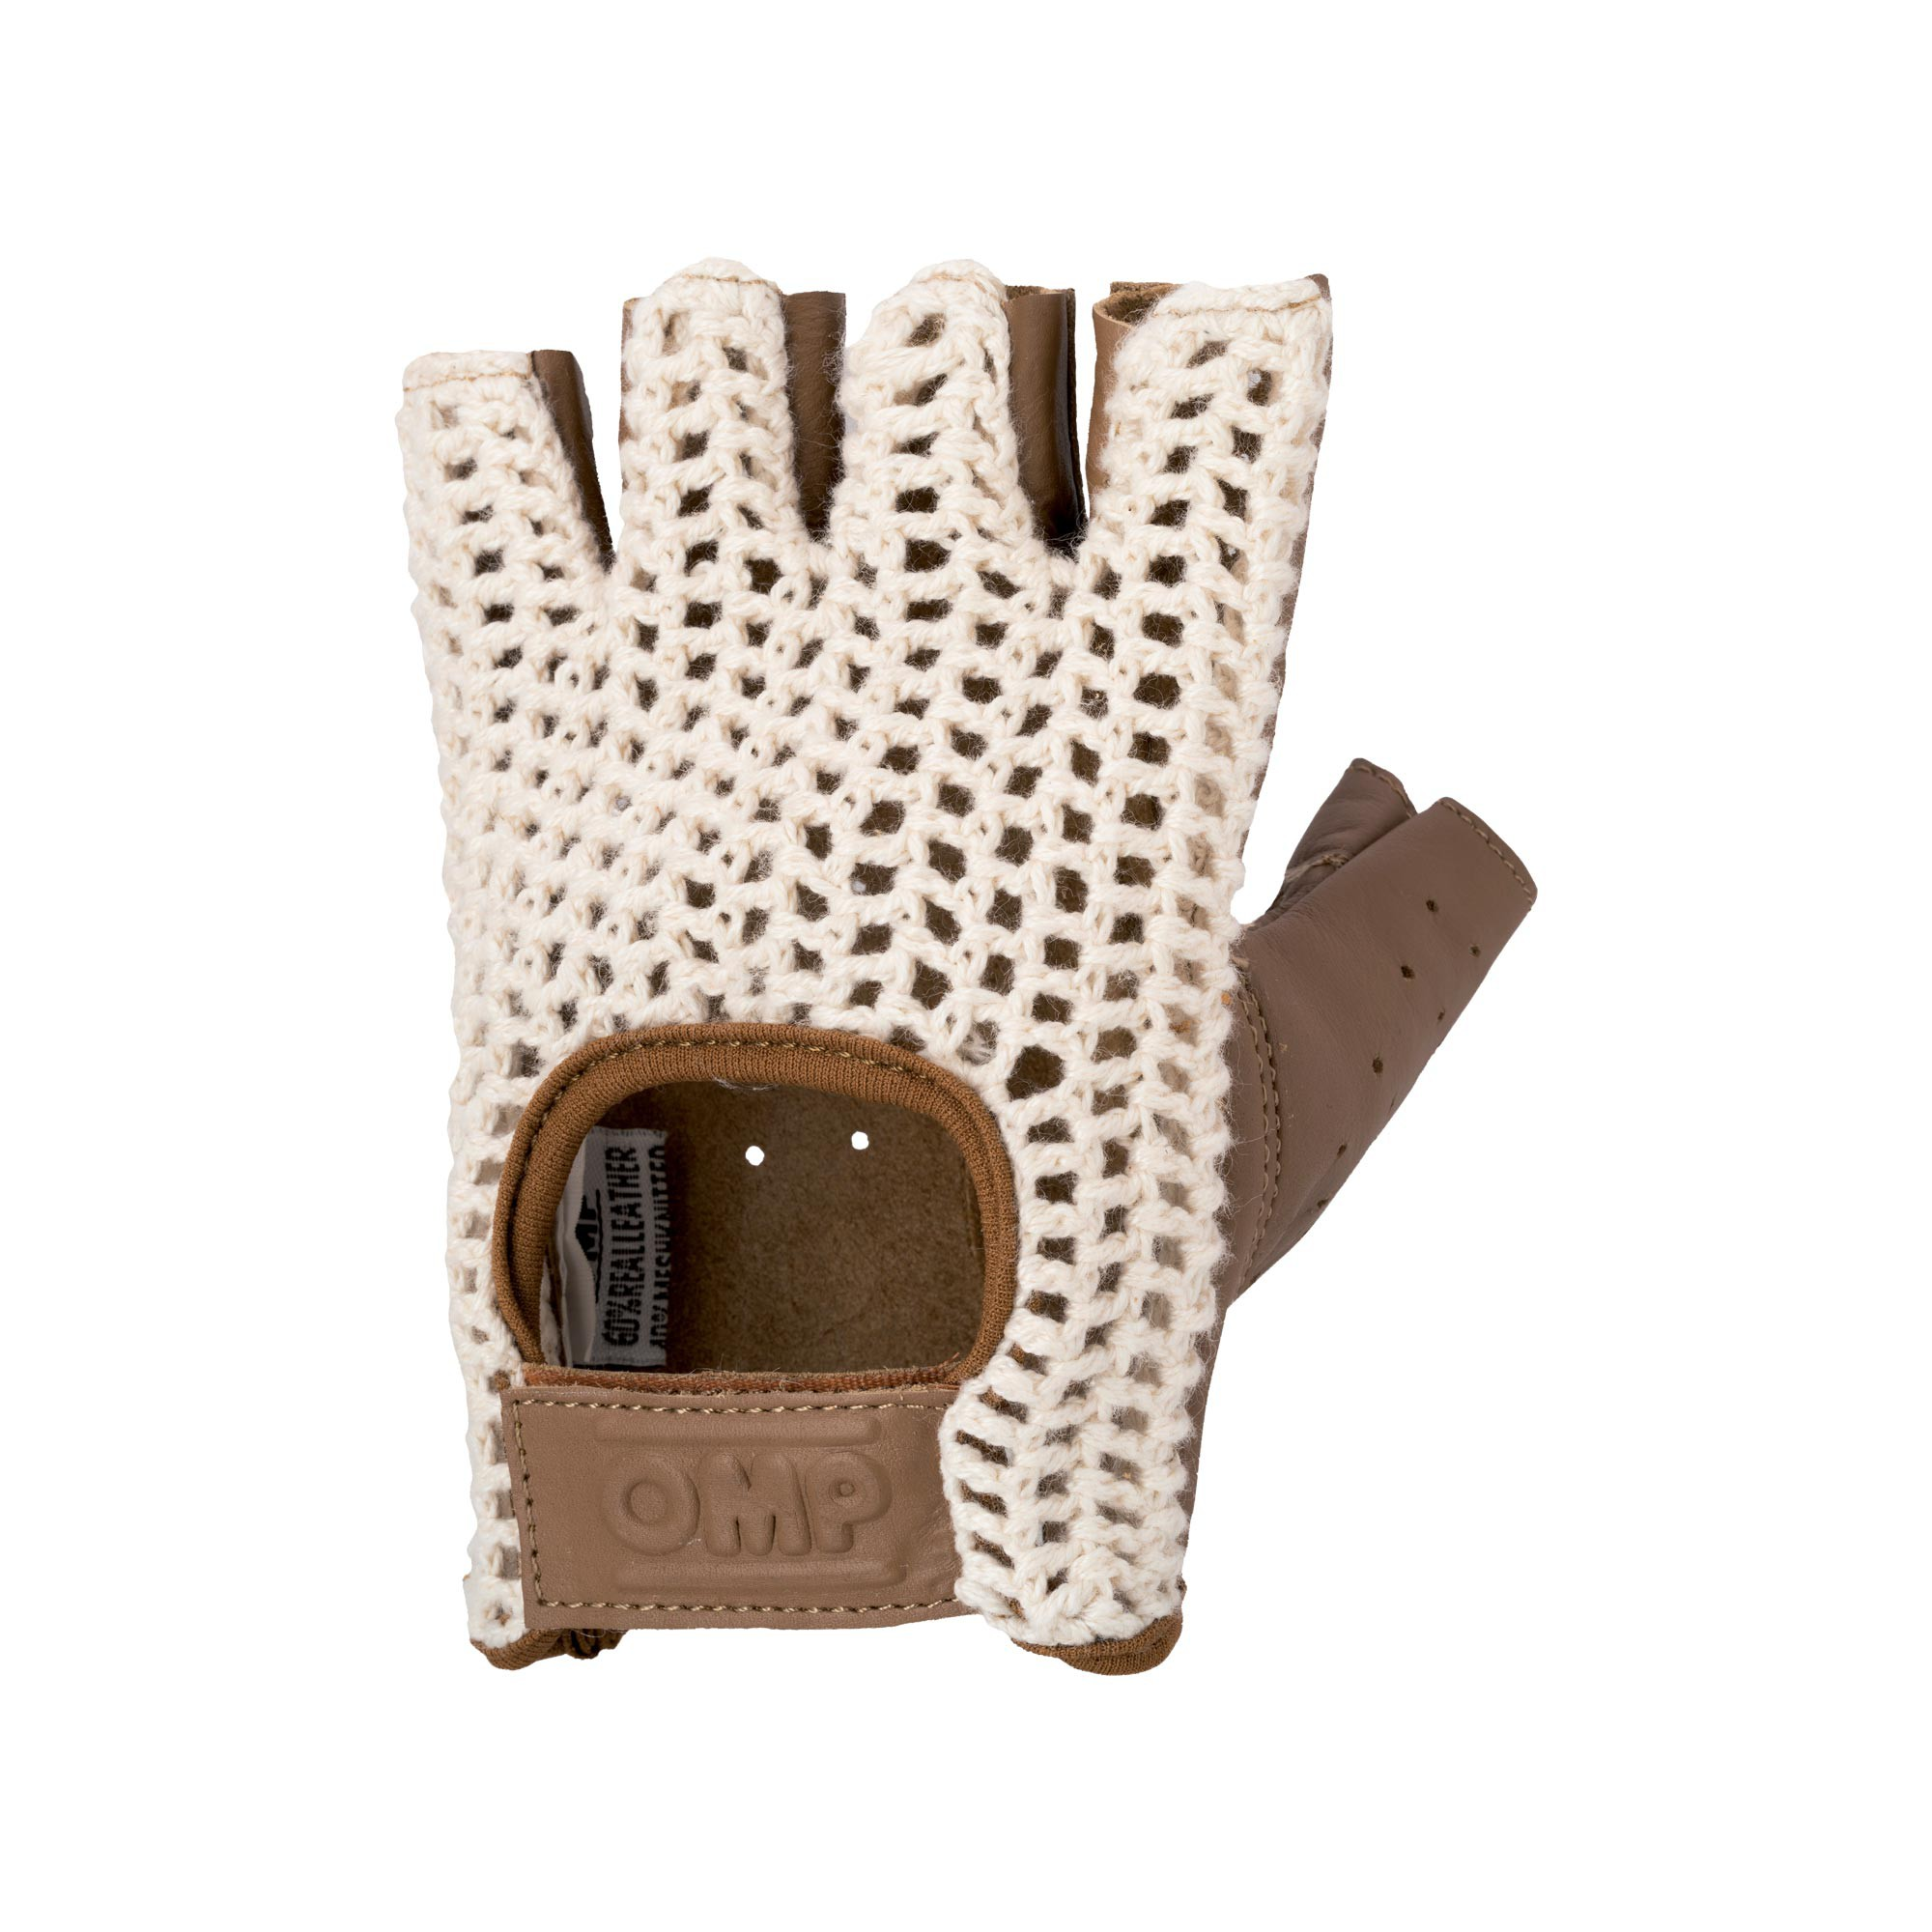 TAZIO:VINTAGE GLOVE CREAM/BROWN LEATHER SIZE:L